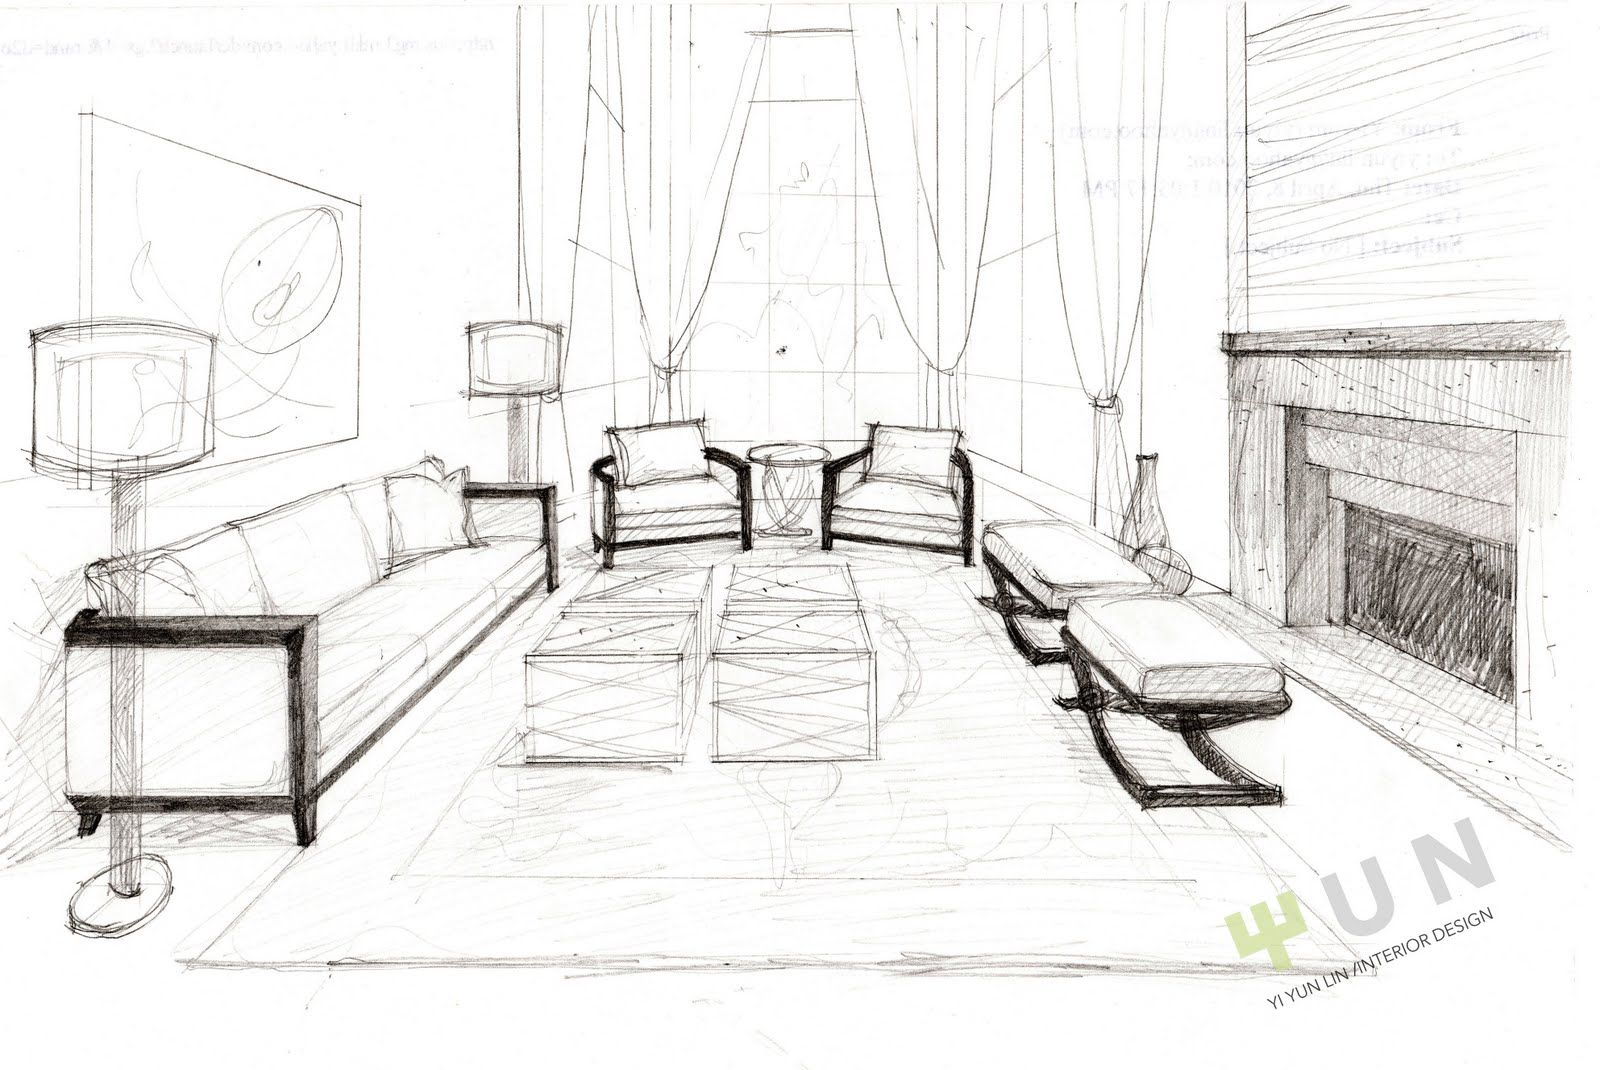 Yi S Fantasia Sweet Water Project Interior Design Living Room Sketch Interiorsketch